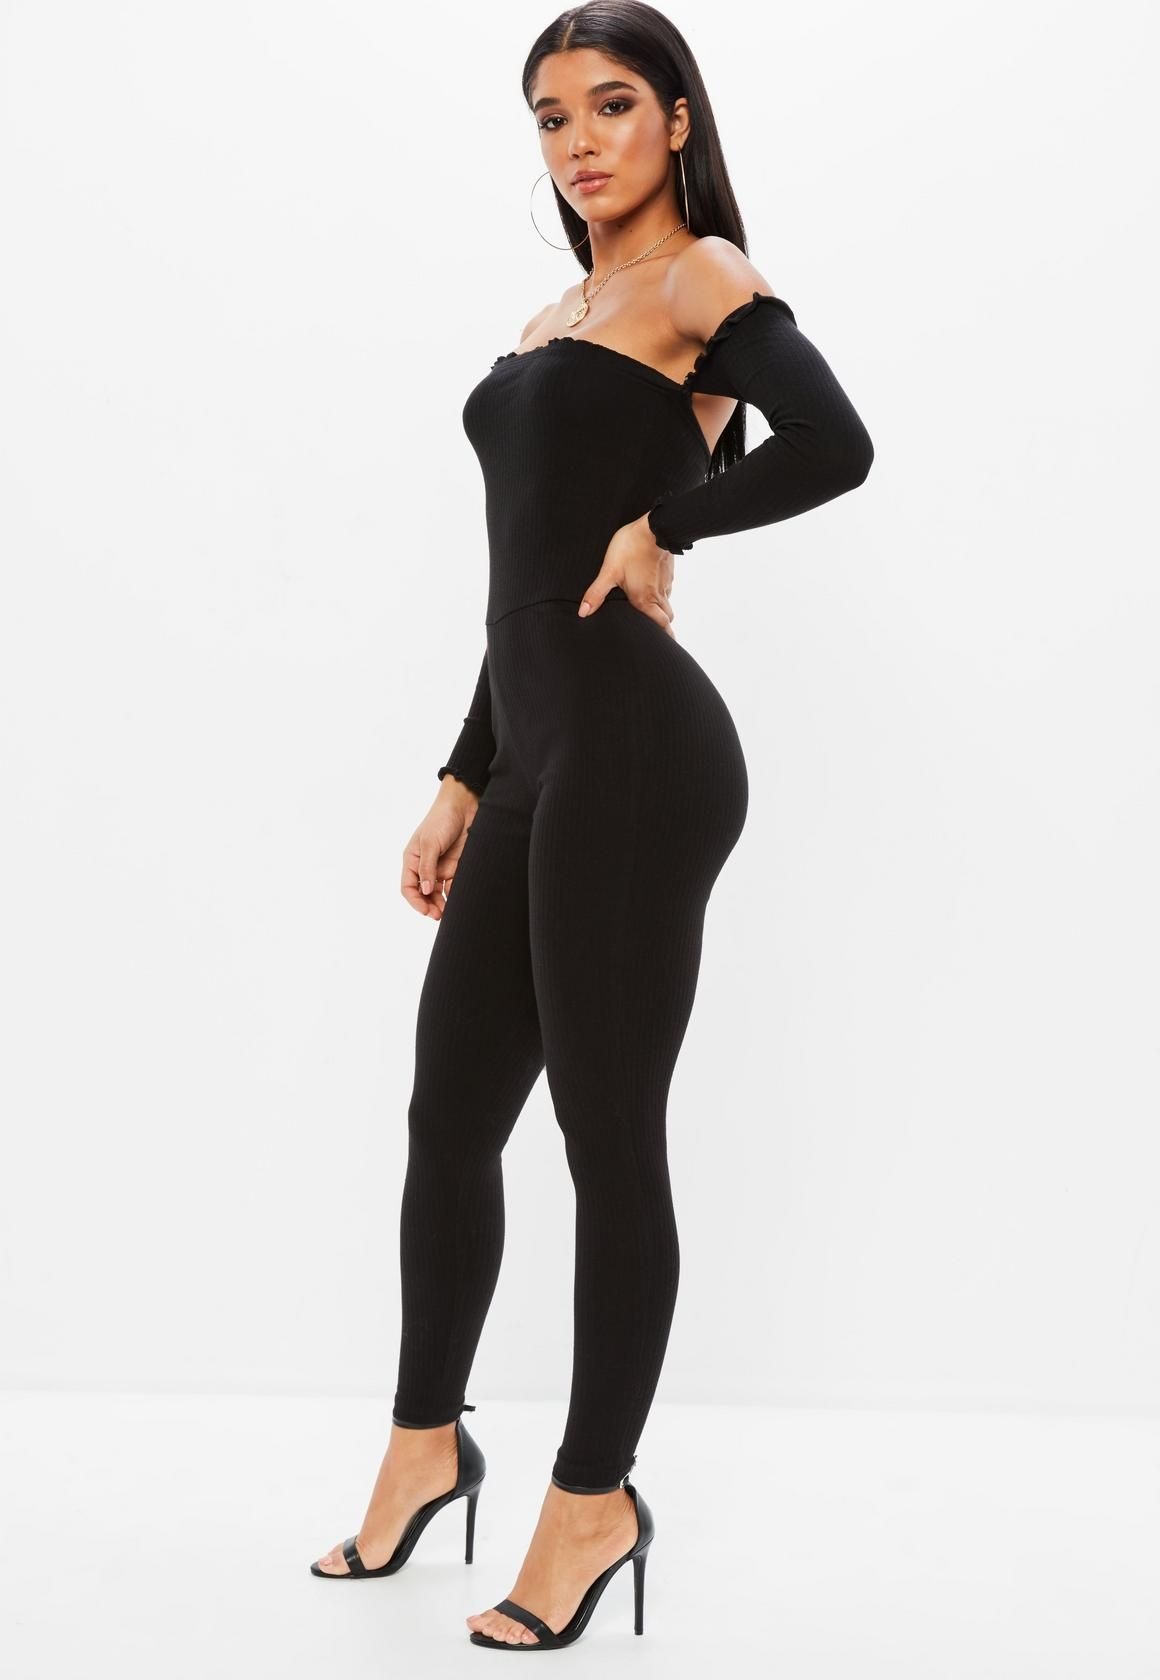 62ac7adc8169 Missguided - Black Bardot Frill Ribbed Unitard Jumpsuit